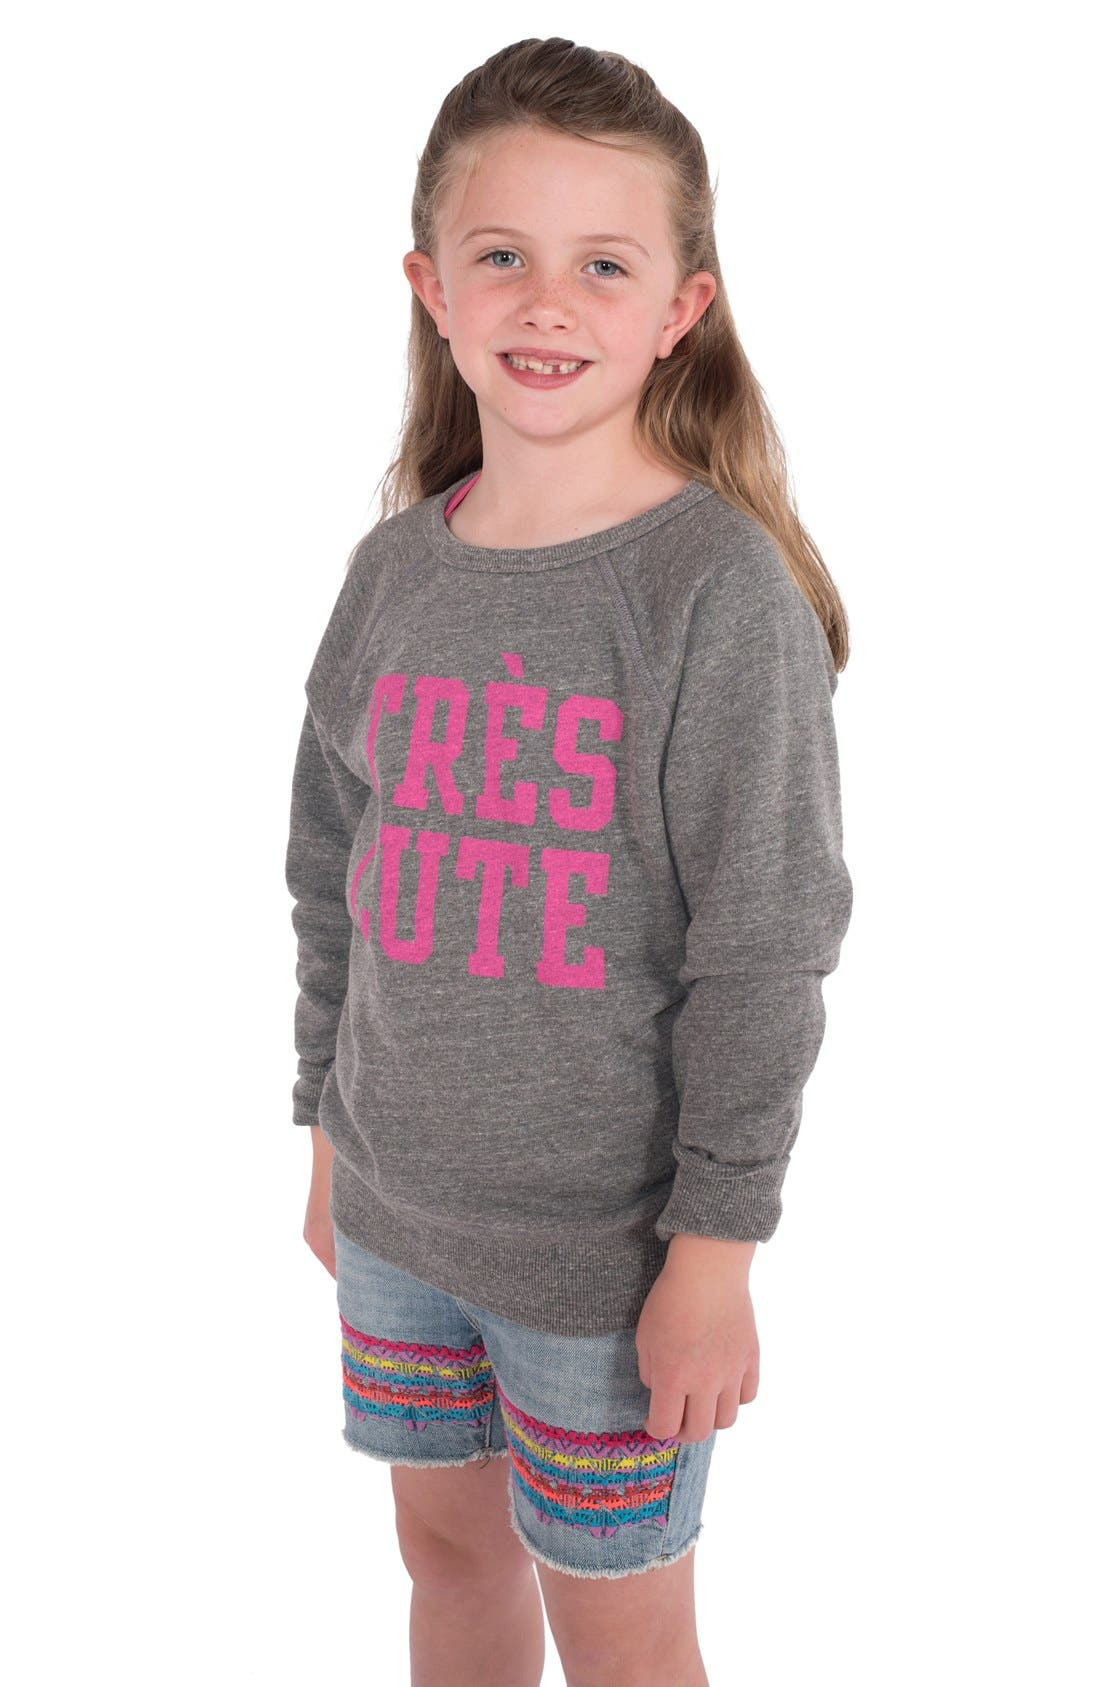 Alternate Image 1 Selected - Peek 'Très Cute' Graphic Sweatshirt (Toddler Girls, Little Girls & Big Girls)